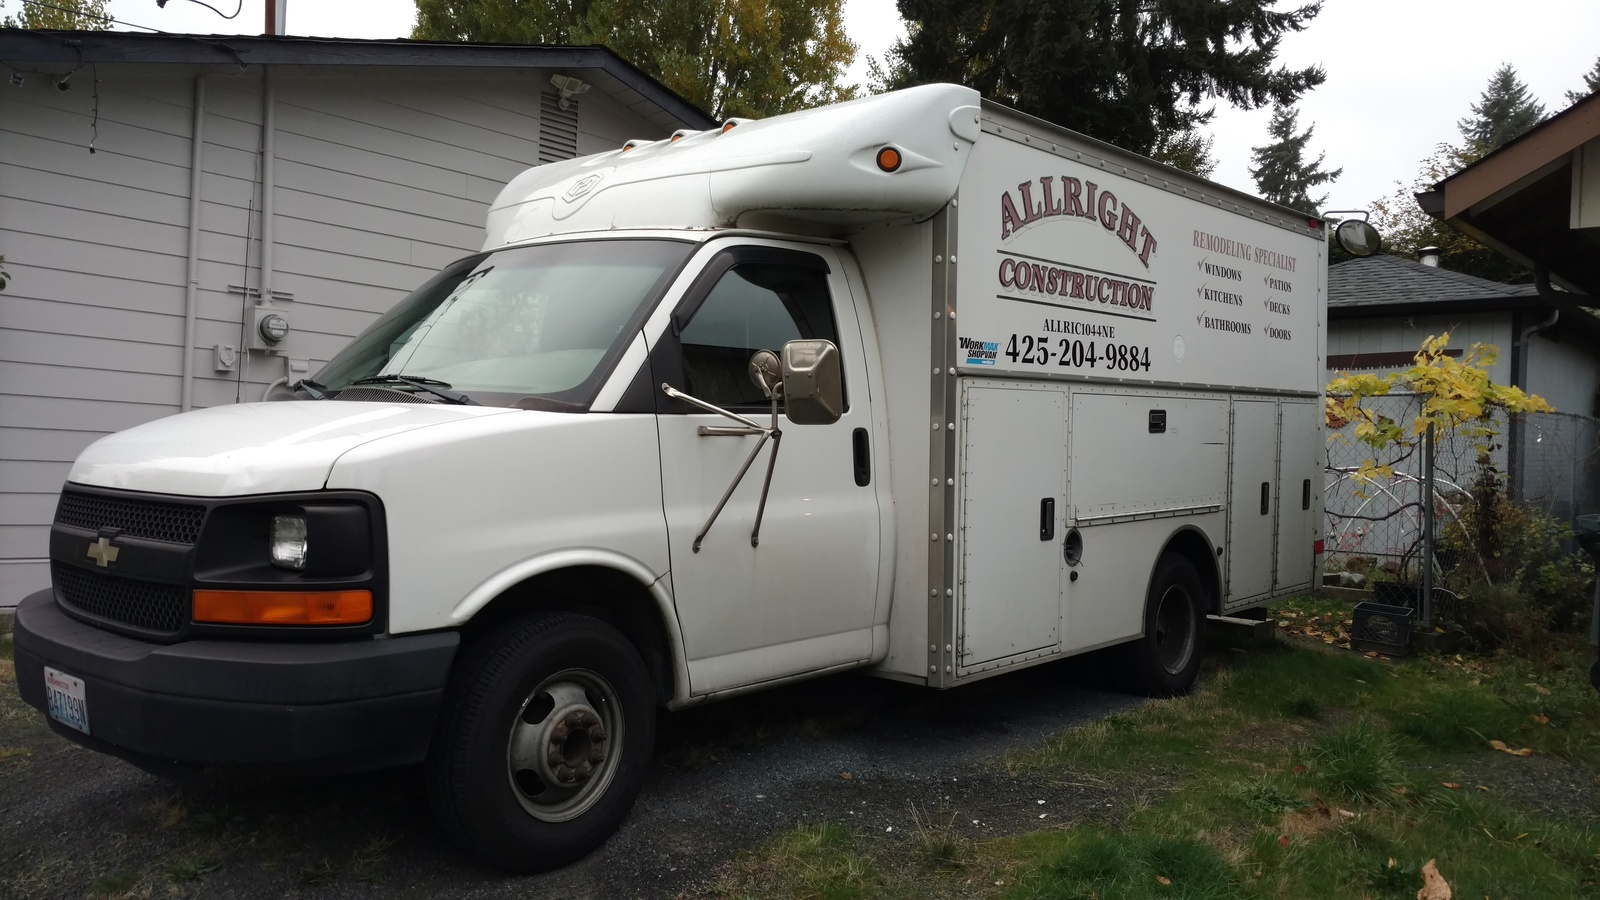 All Chevy 2003 chevy express van : 2003 Chevrolet Express Cargo - Overview - CarGurus